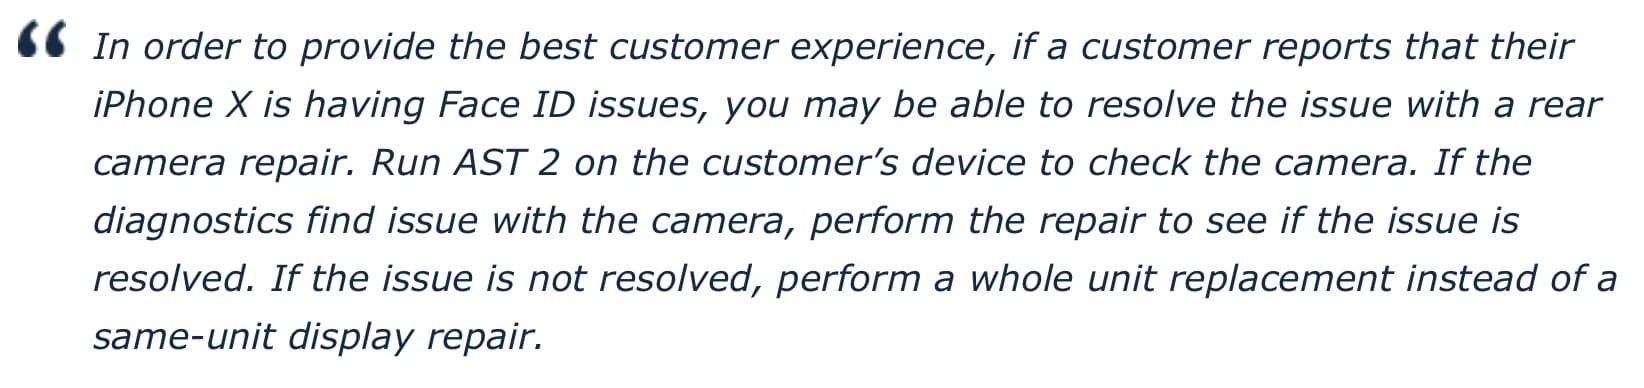 Face Id Repair Policy